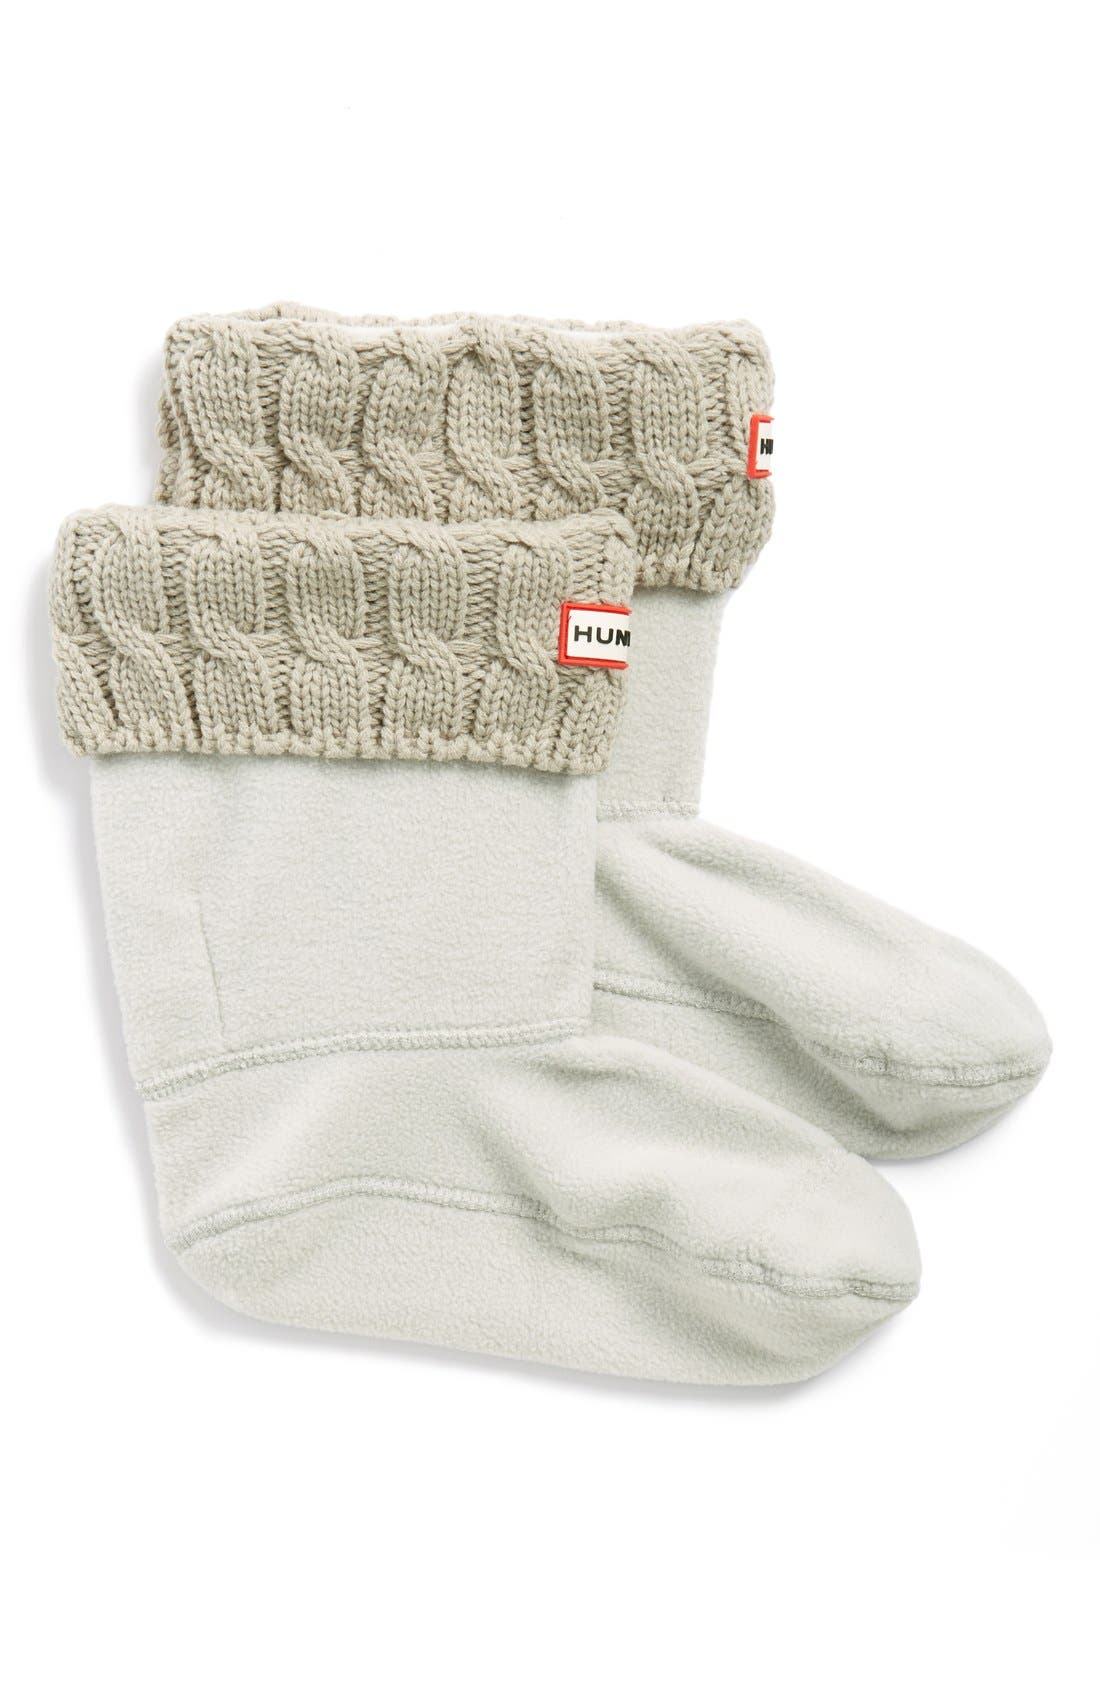 Original Short Cable Knit Cuff Welly Boot Socks,                             Main thumbnail 1, color,                             GREIGE